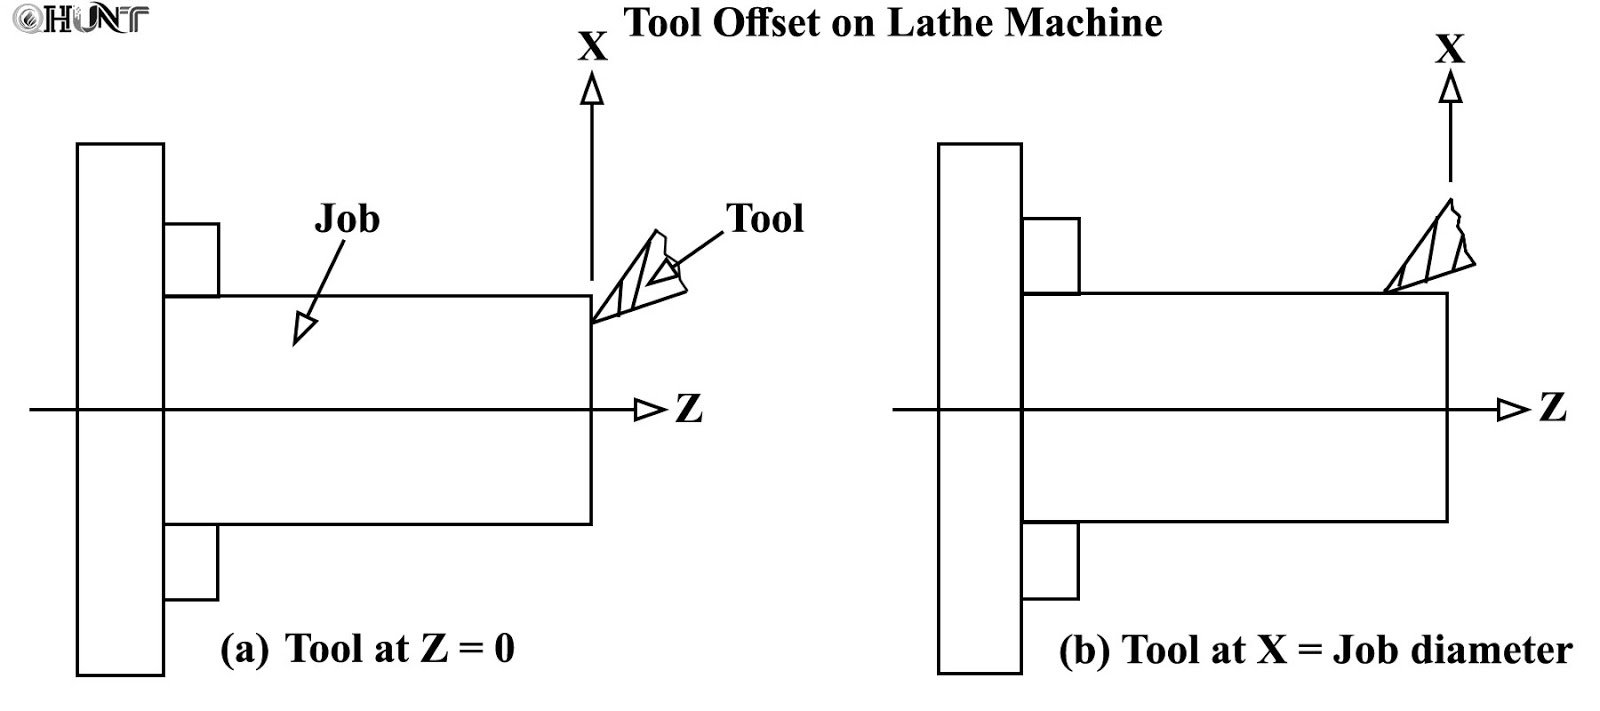 hight resolution of taking tool offset on lathe machine and proving selected program